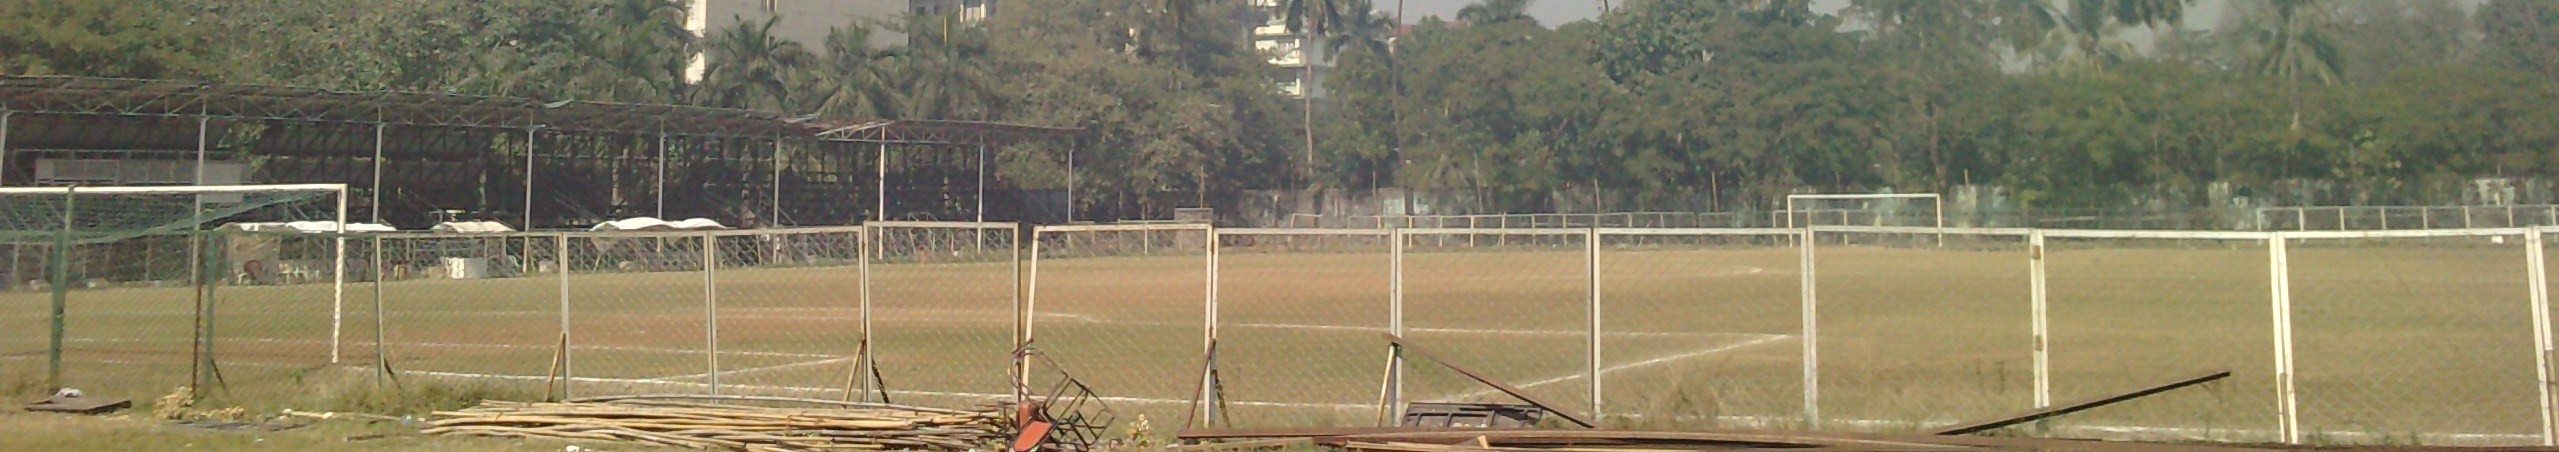 cooperage football ground.jpg